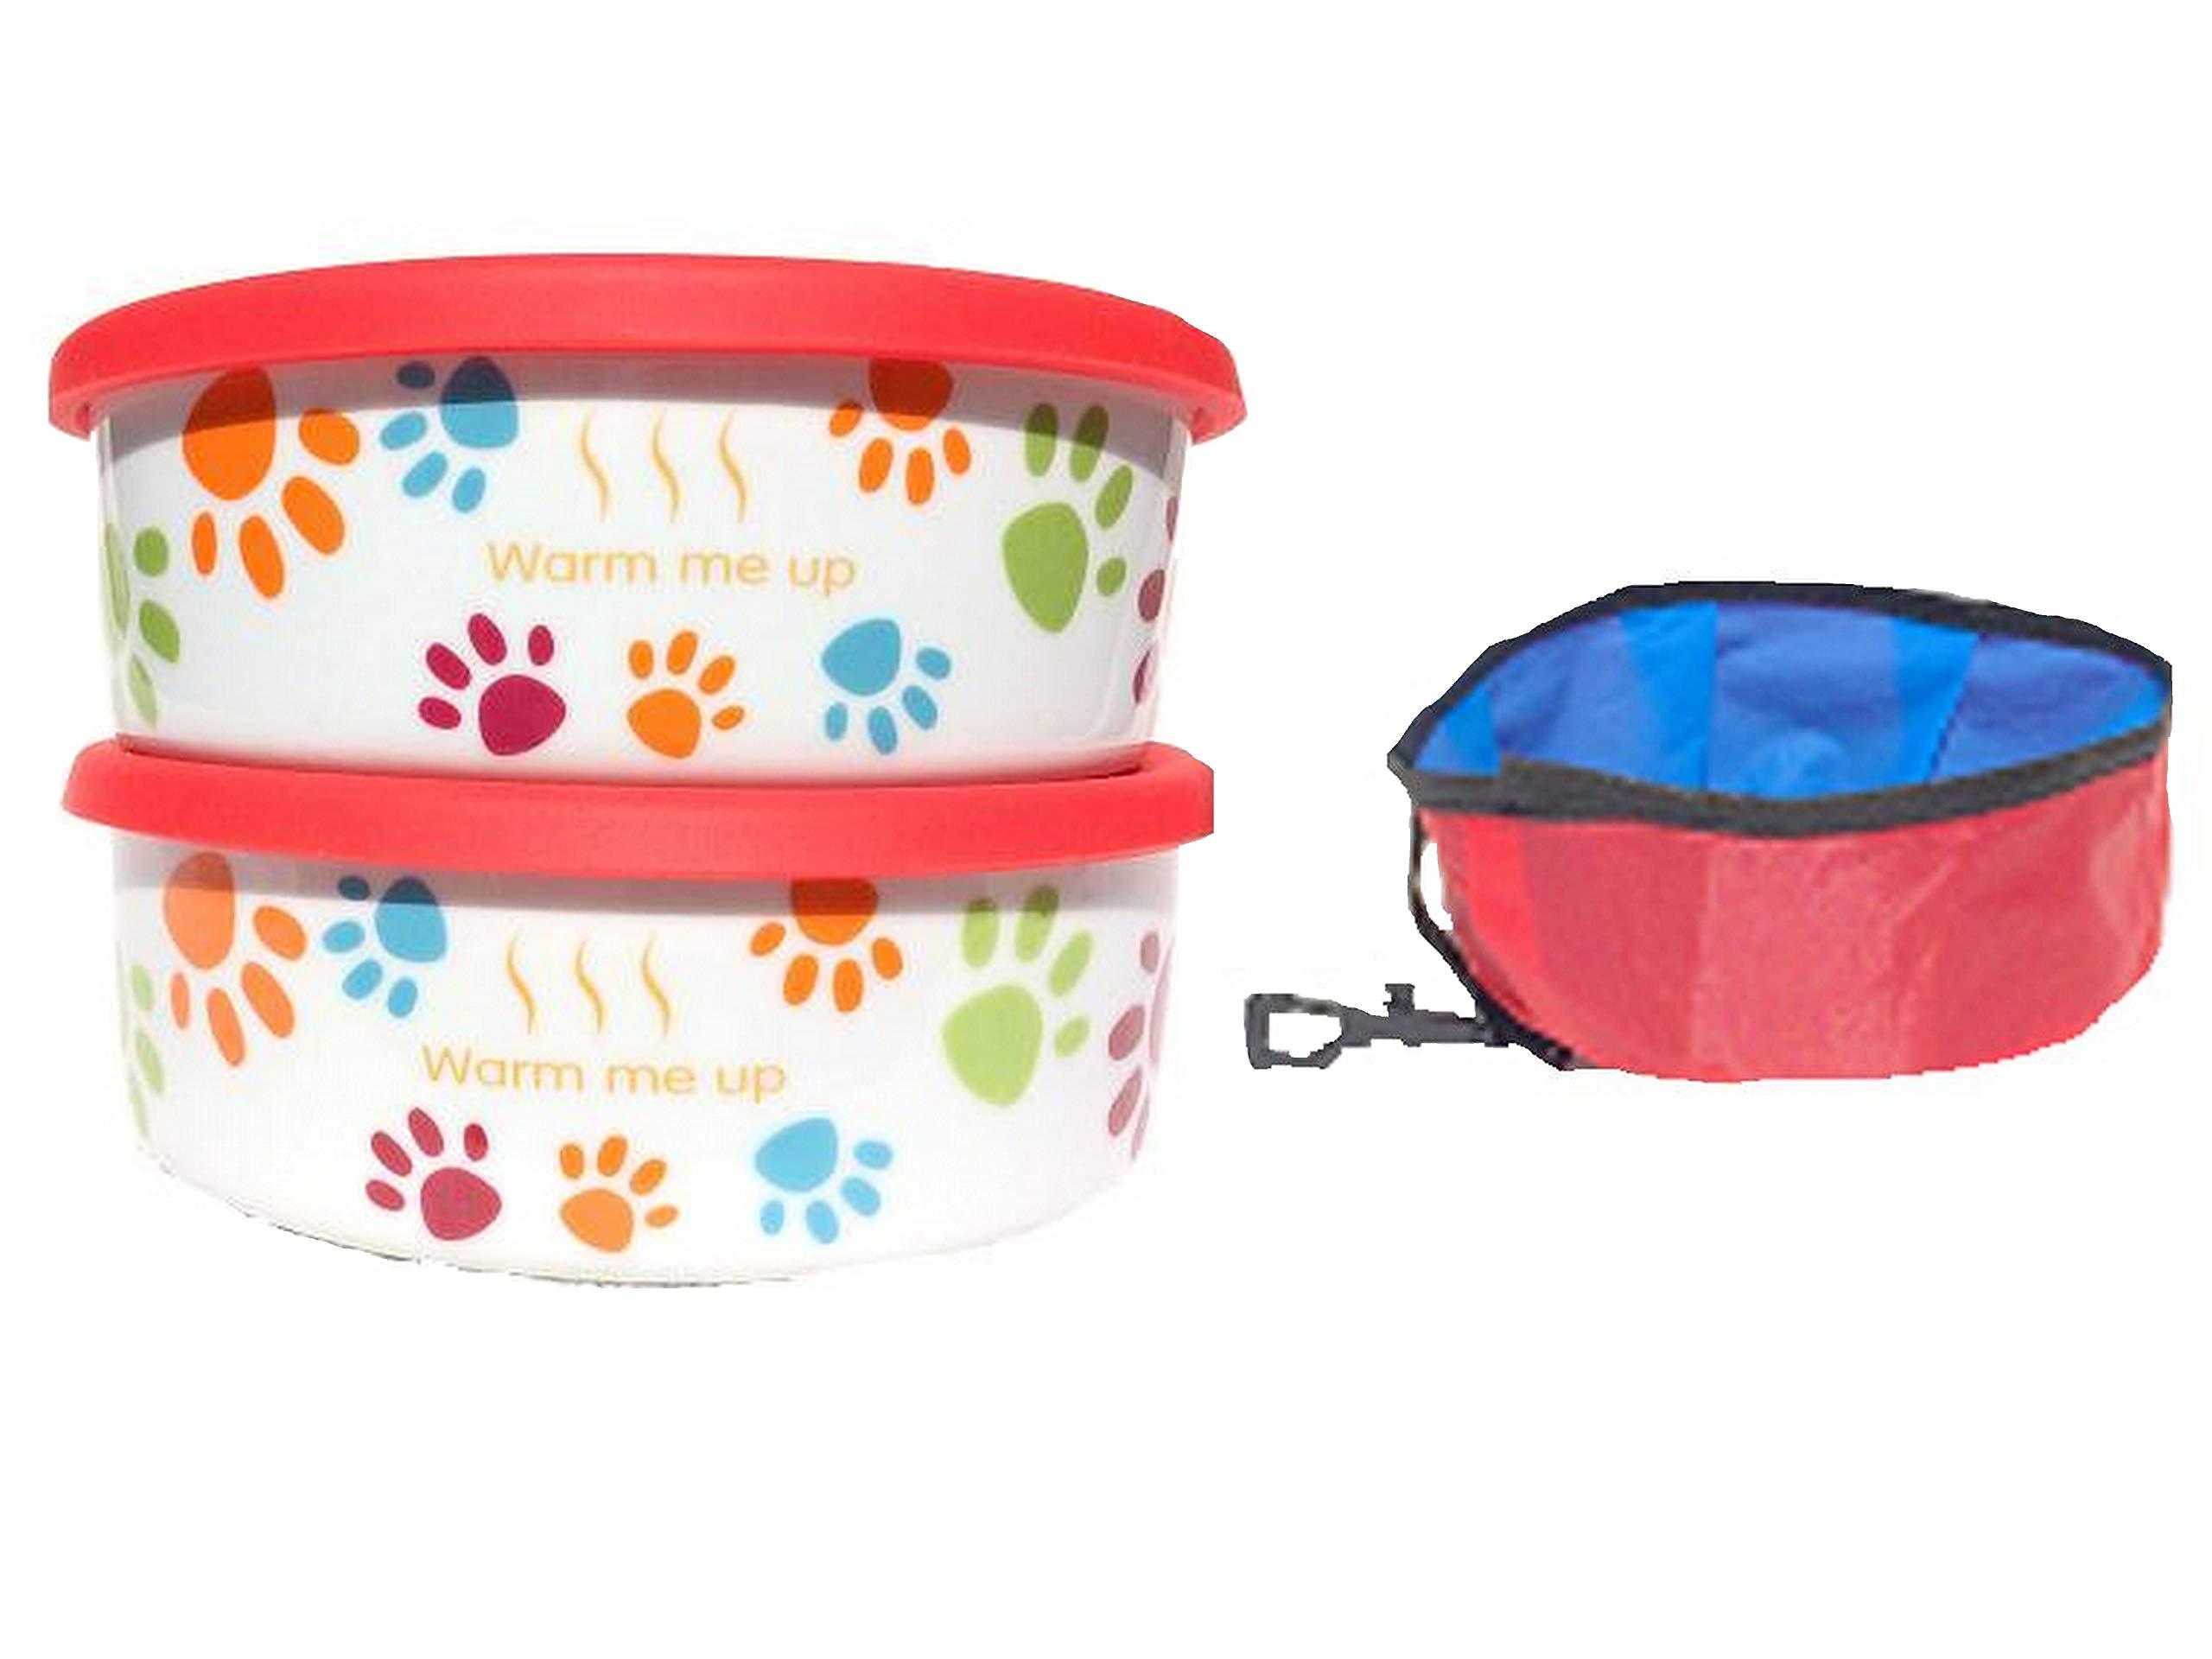 2 Dog/ Cat Bowls with Lid plus a Free Pet Travel Bowl. This Pet Dish Set is FDA approved porcelain material+ airtight storage lid plus collapsible Pet Travel Bowl for dog cat food or water by Quality Line (Image #1)